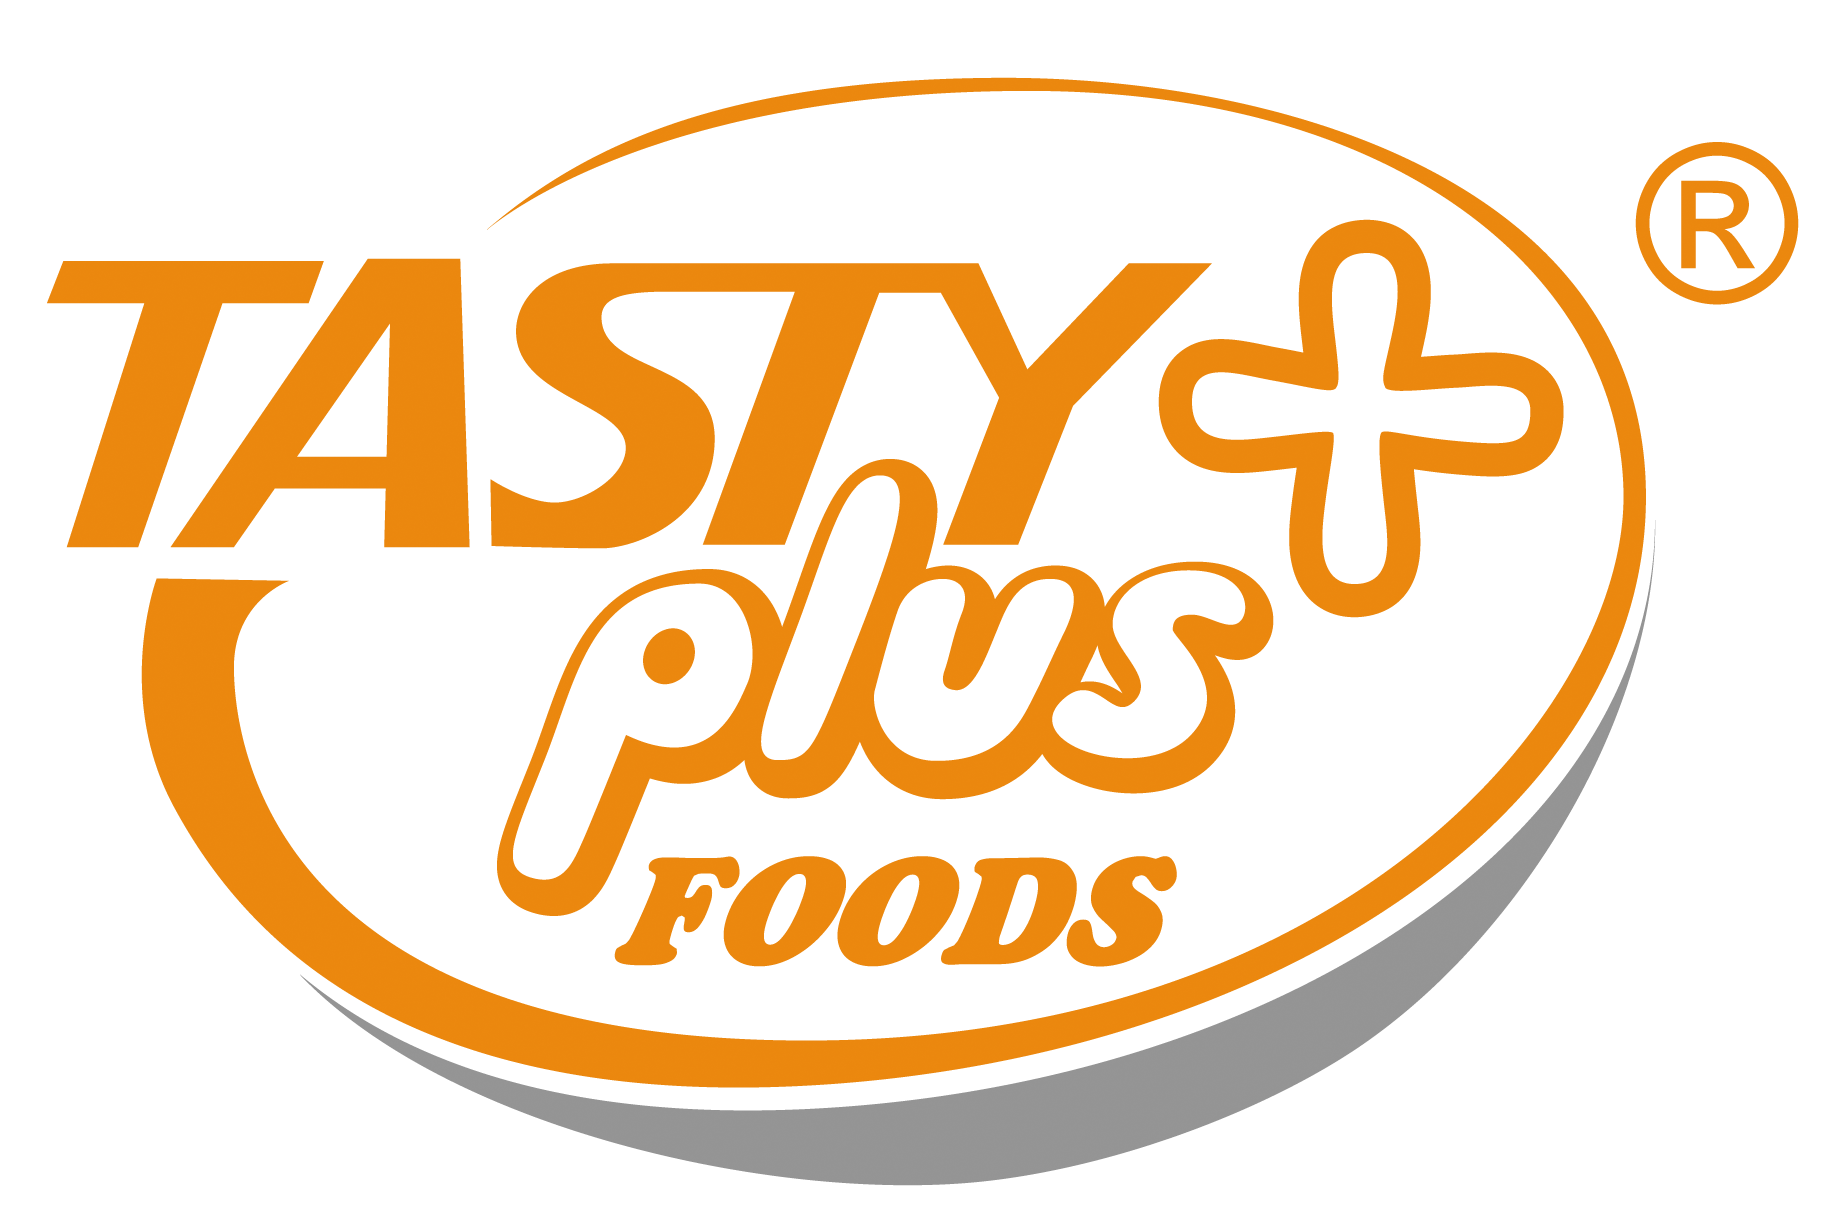 Tasty Foods Plus Logo